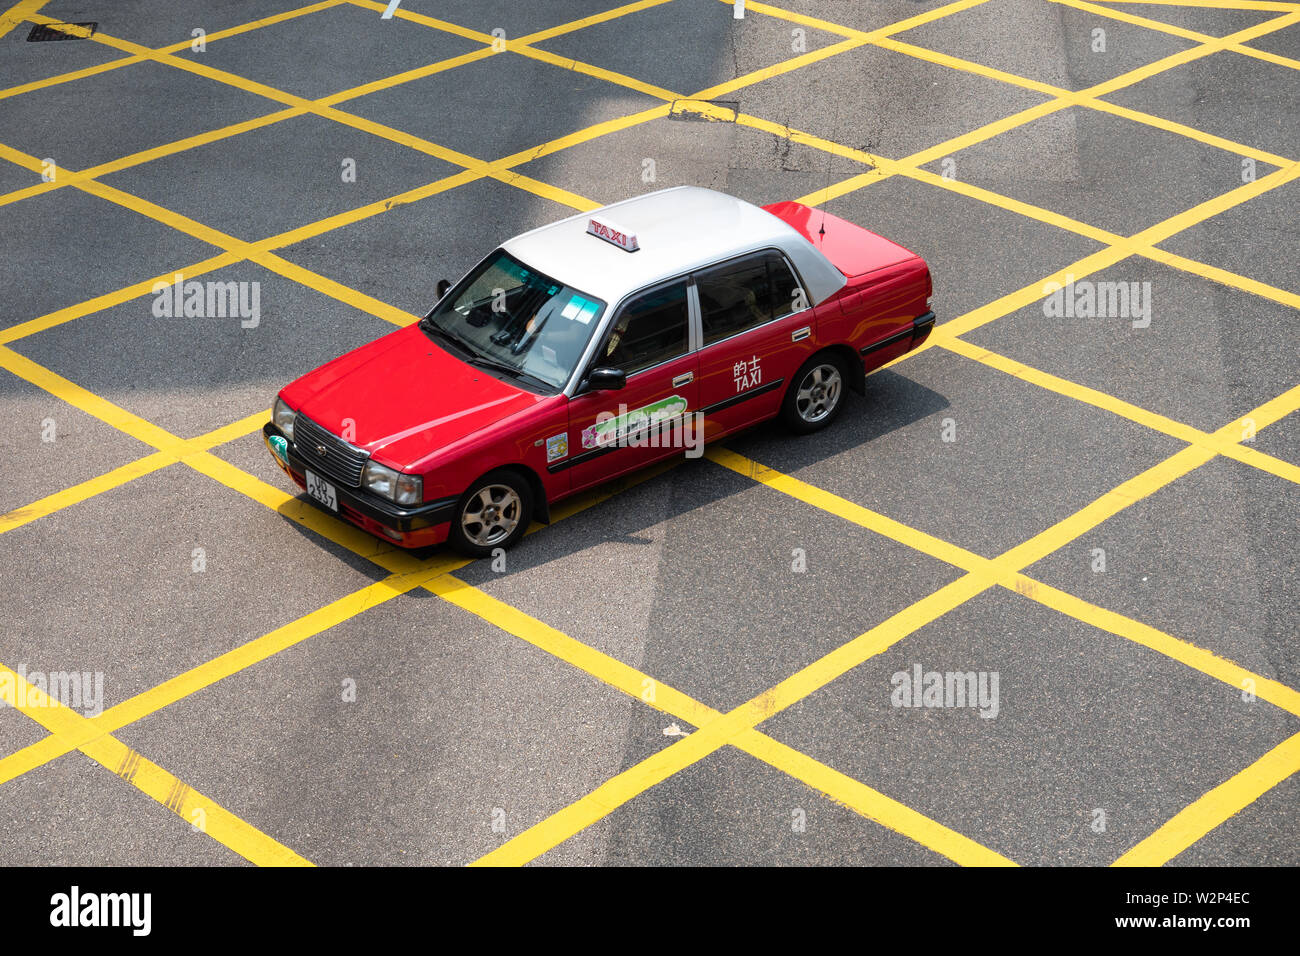 Red taxi in Hong Kong Island Drive through the middle of the intersection with the yellow line at the city center. - Stock Image